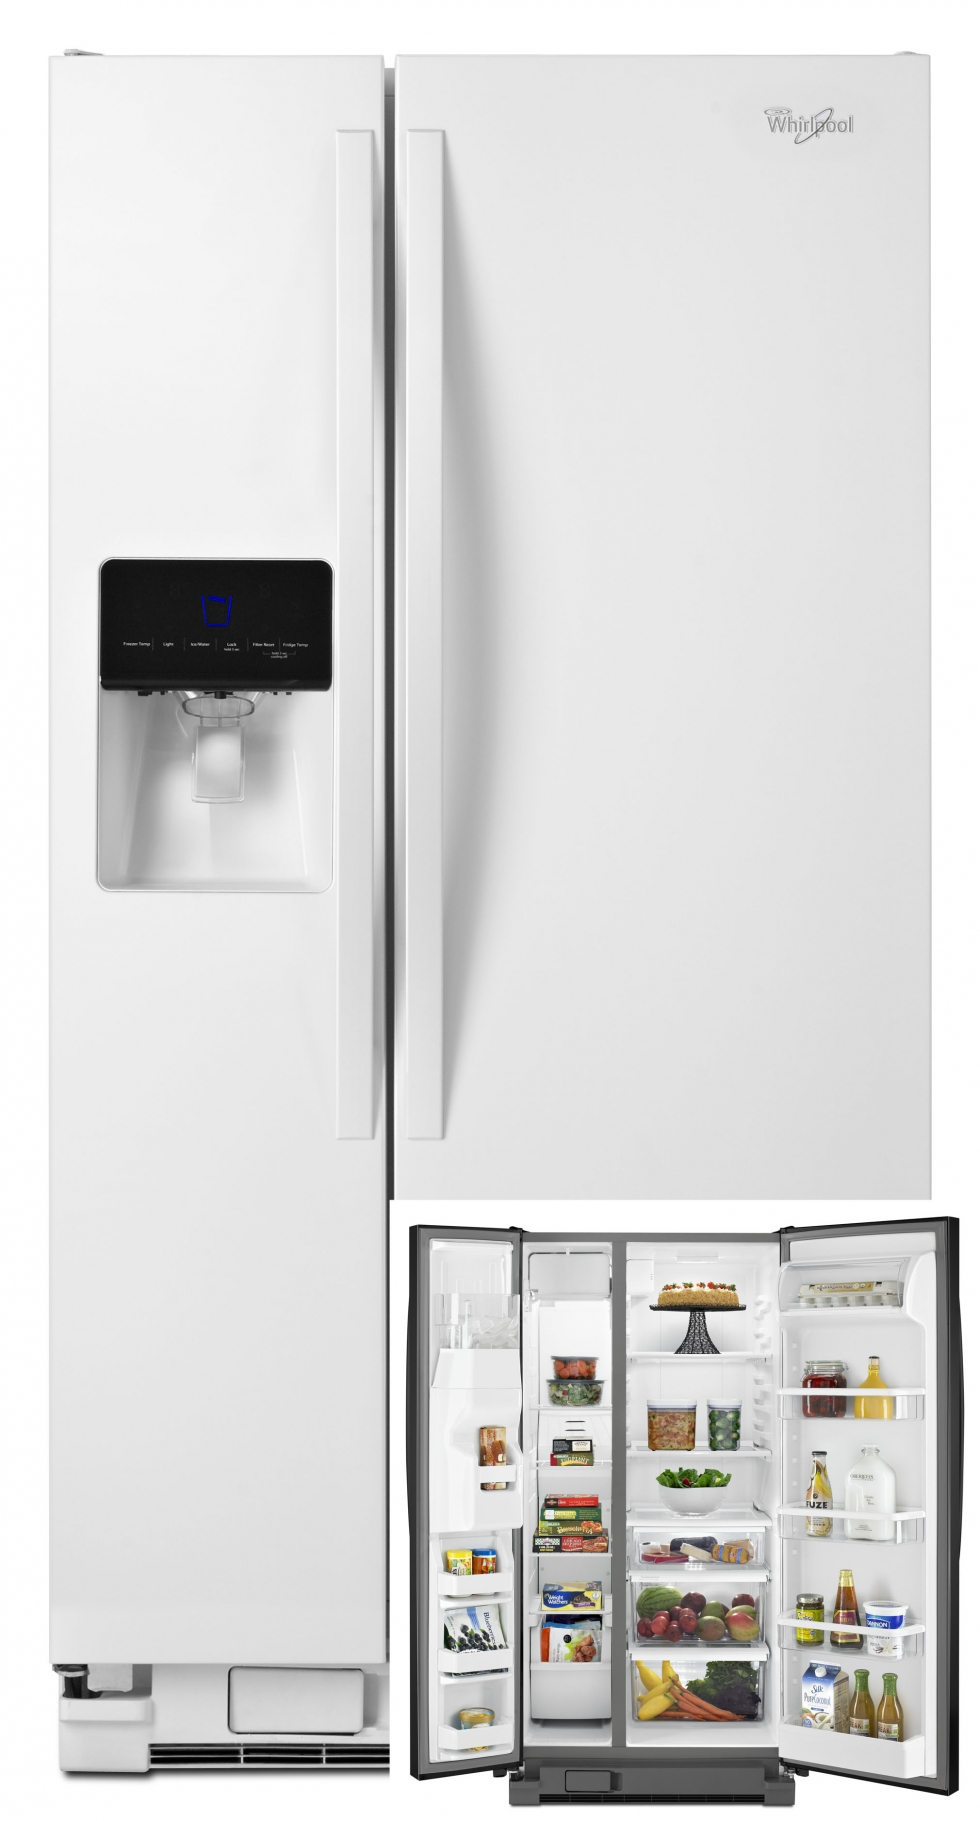 Whirlpool Side-by-Side Refrigerator White